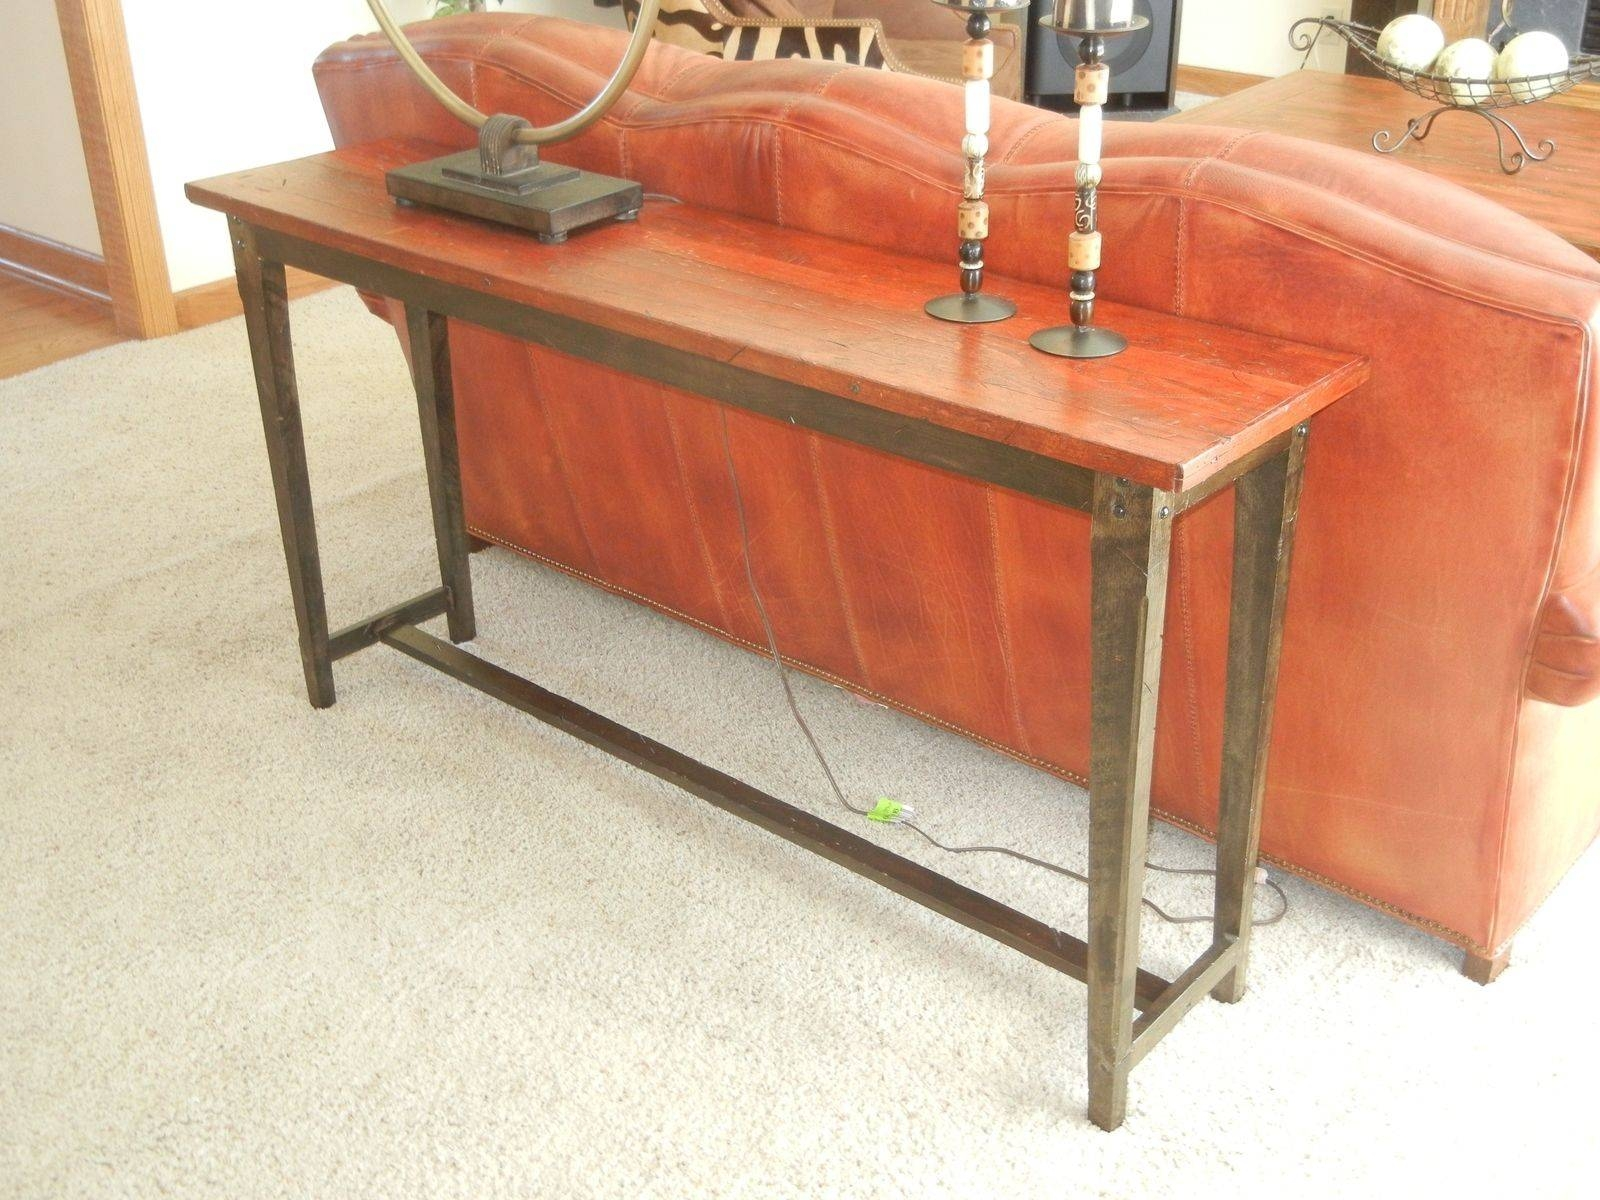 Reclaimed Wood Console Tables And Sofa Tables | Barnwood Console with regard to Barnwood Sofa Tables (Image 9 of 15)